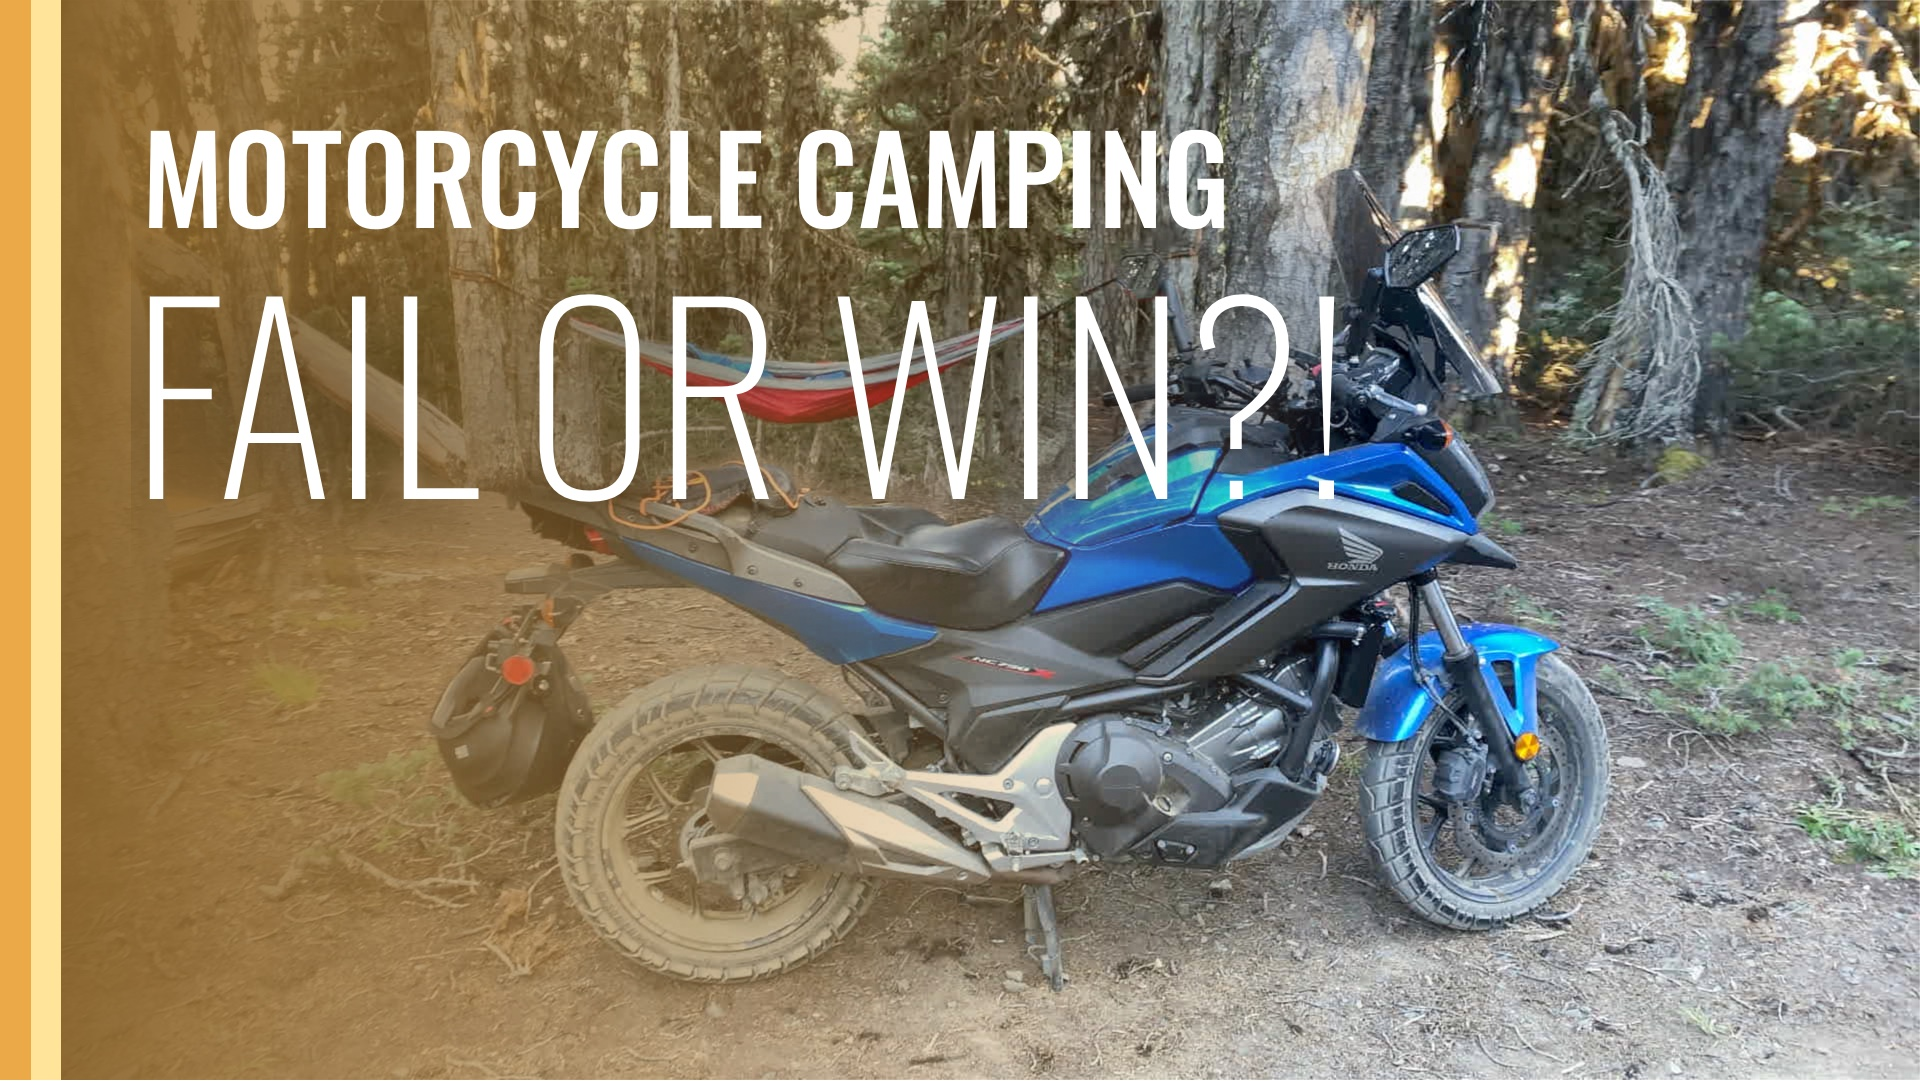 video link to YouTube for motorcycle camping video